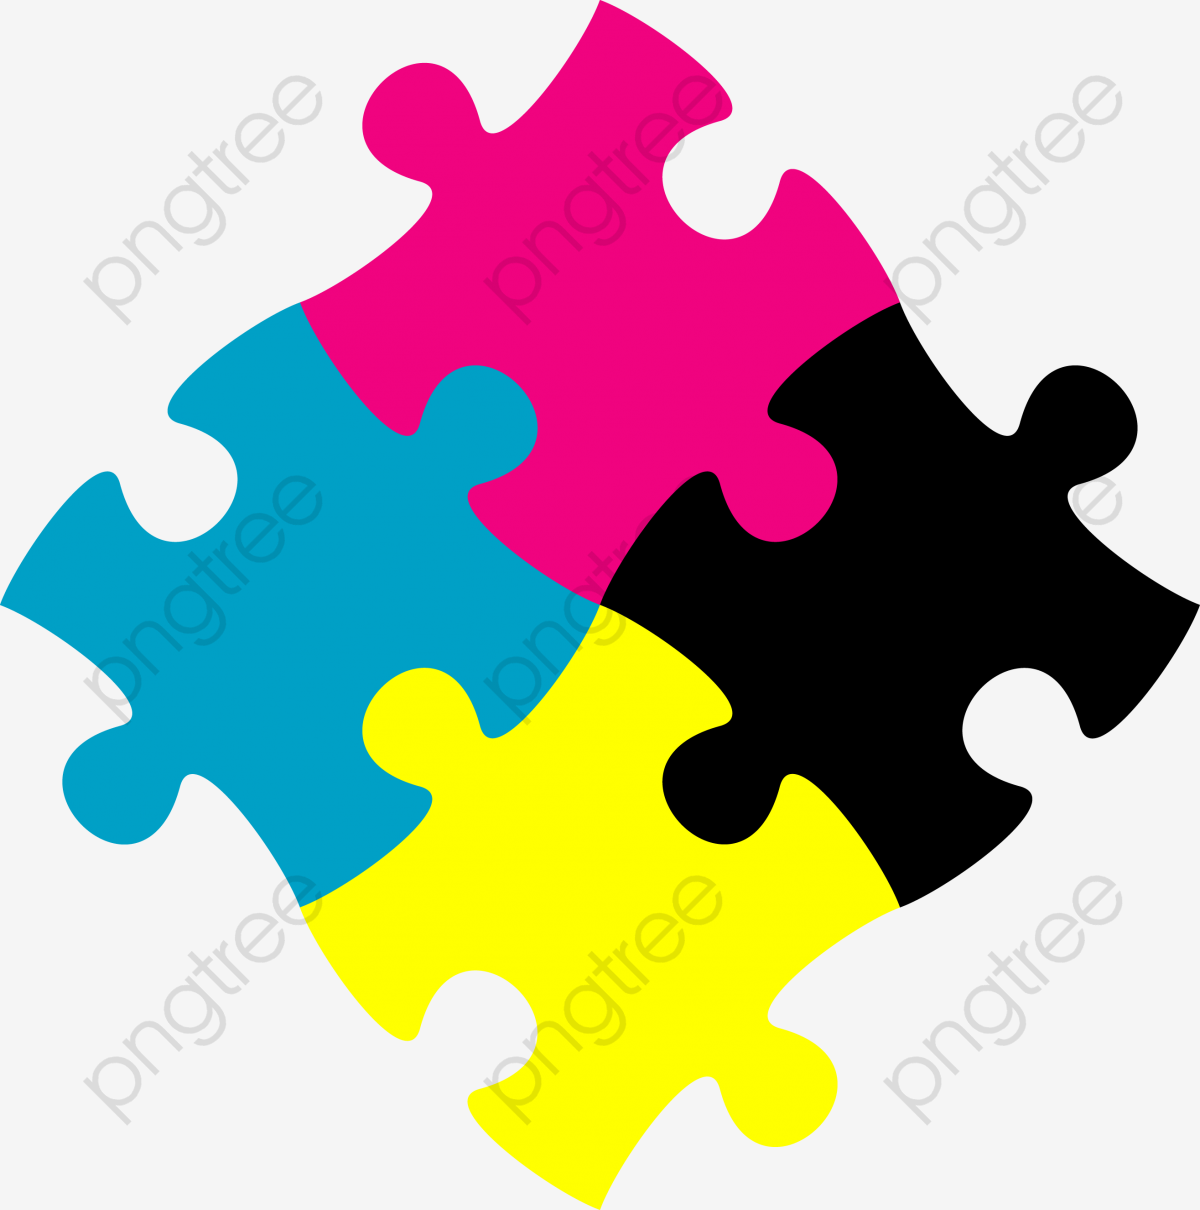 Puzzle Pieces Cartoon, Cartoon Clipart, Leave The Material.